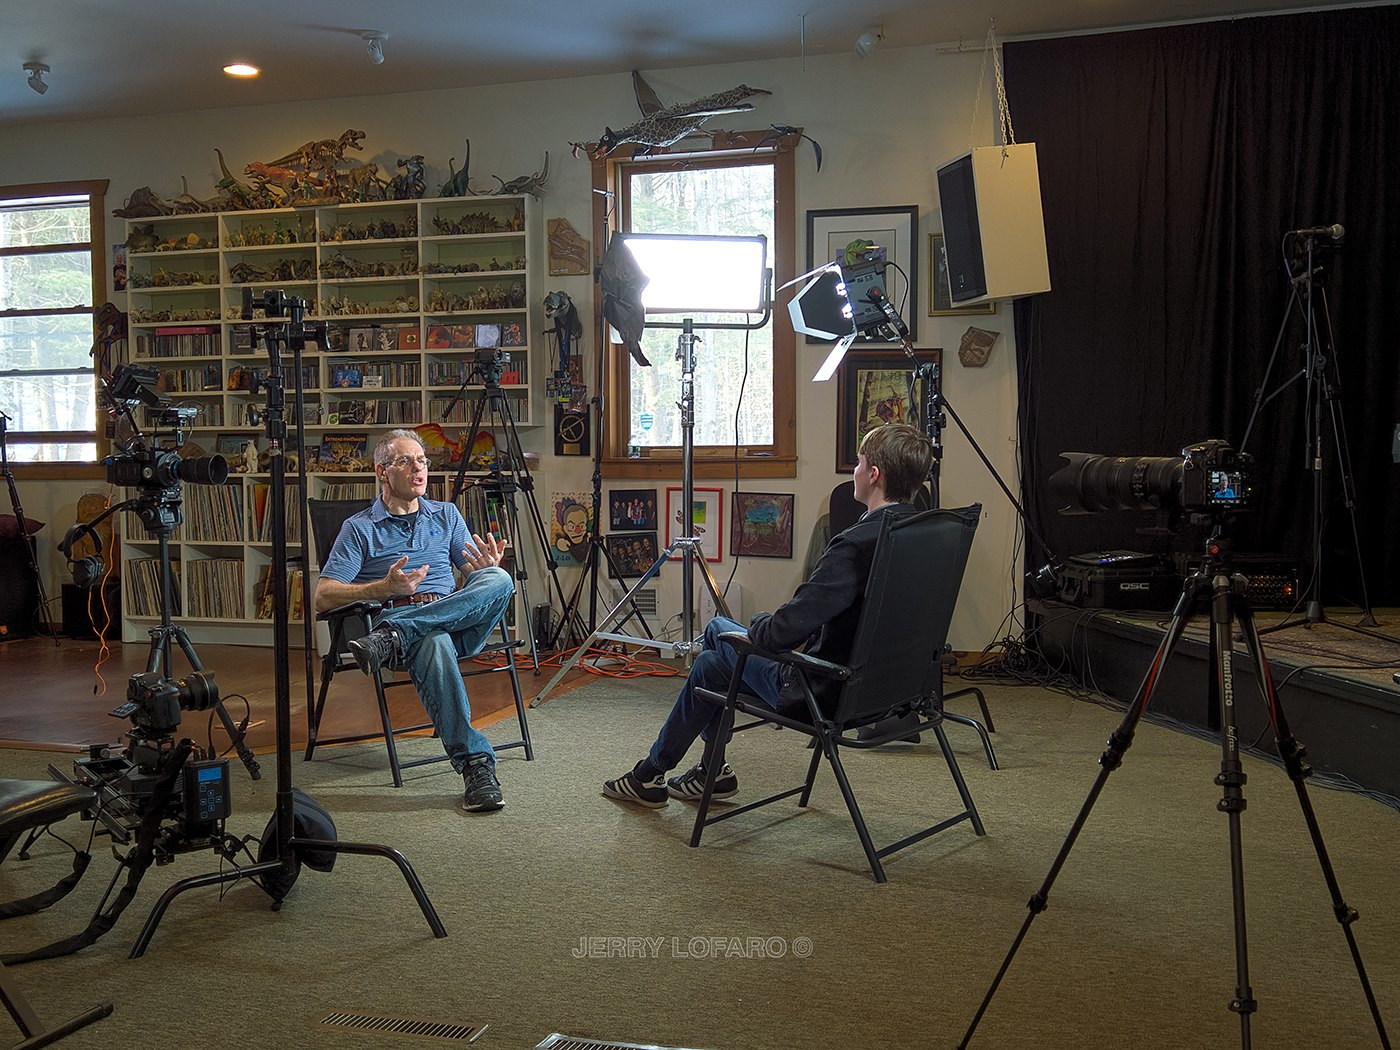 Elliot Gould interviewing Keith Emerson's grandson, Ethan Emerson